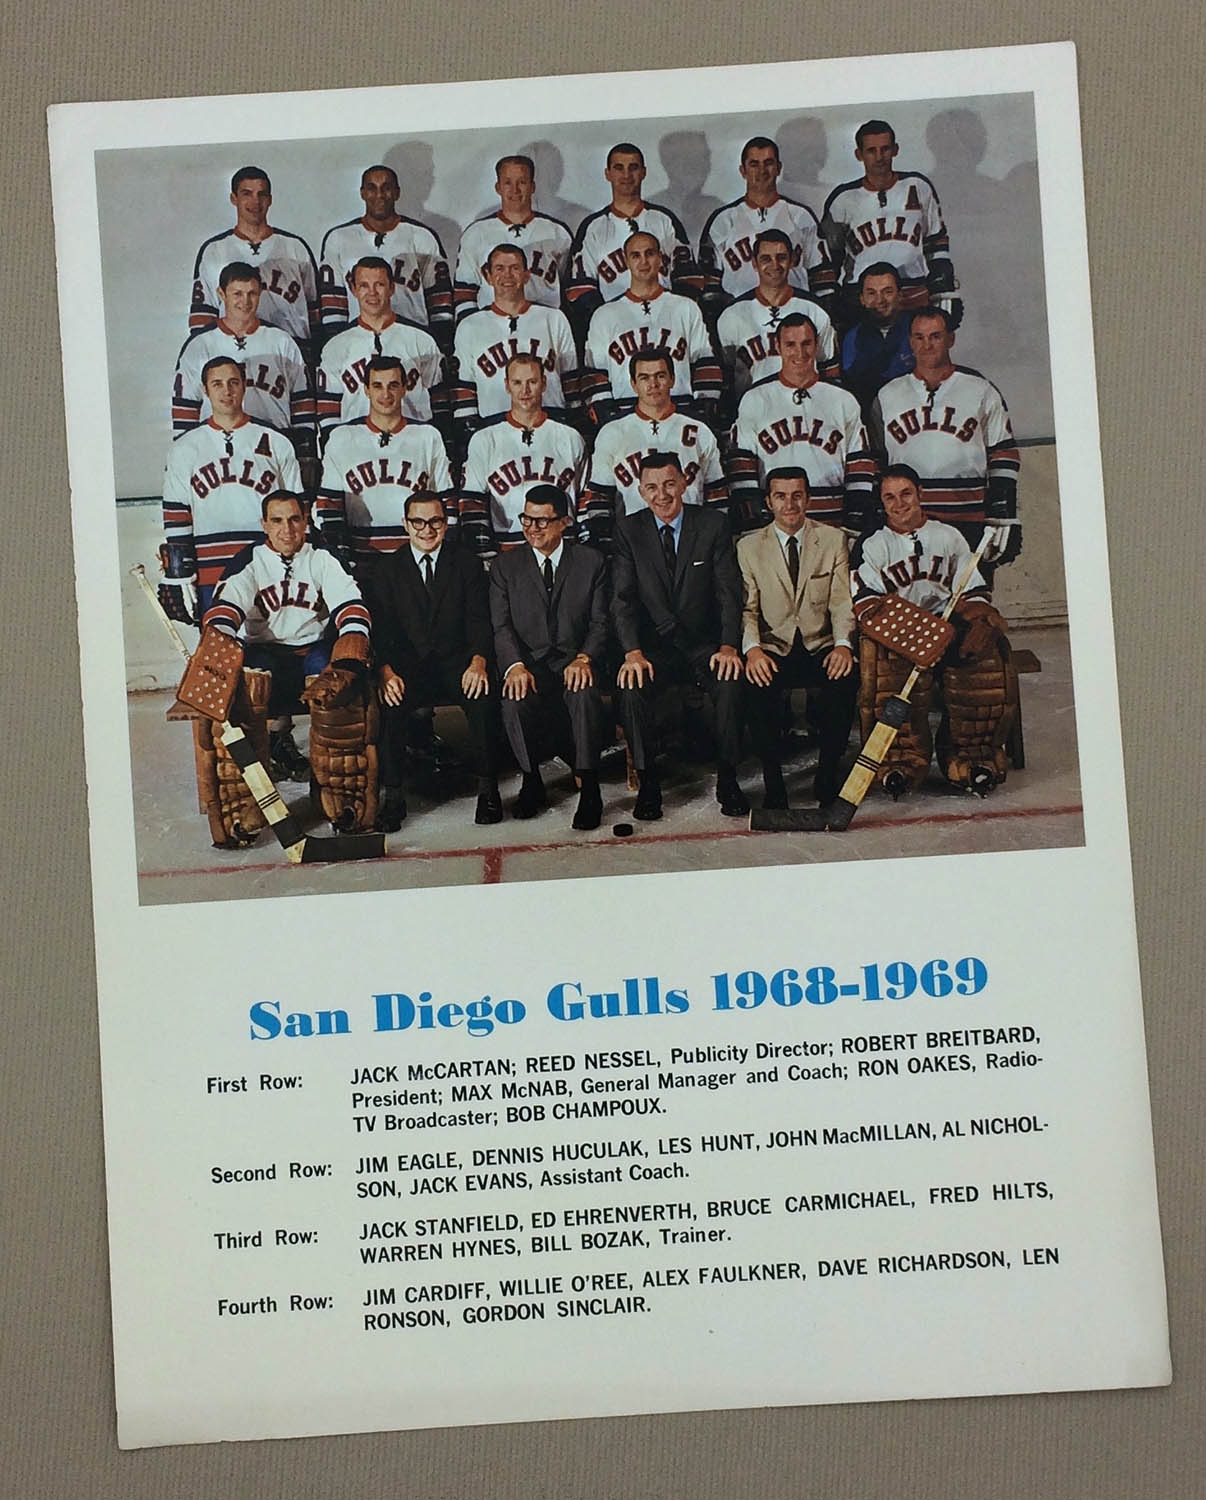 San Diego Gulls 1968-69 Team Photo